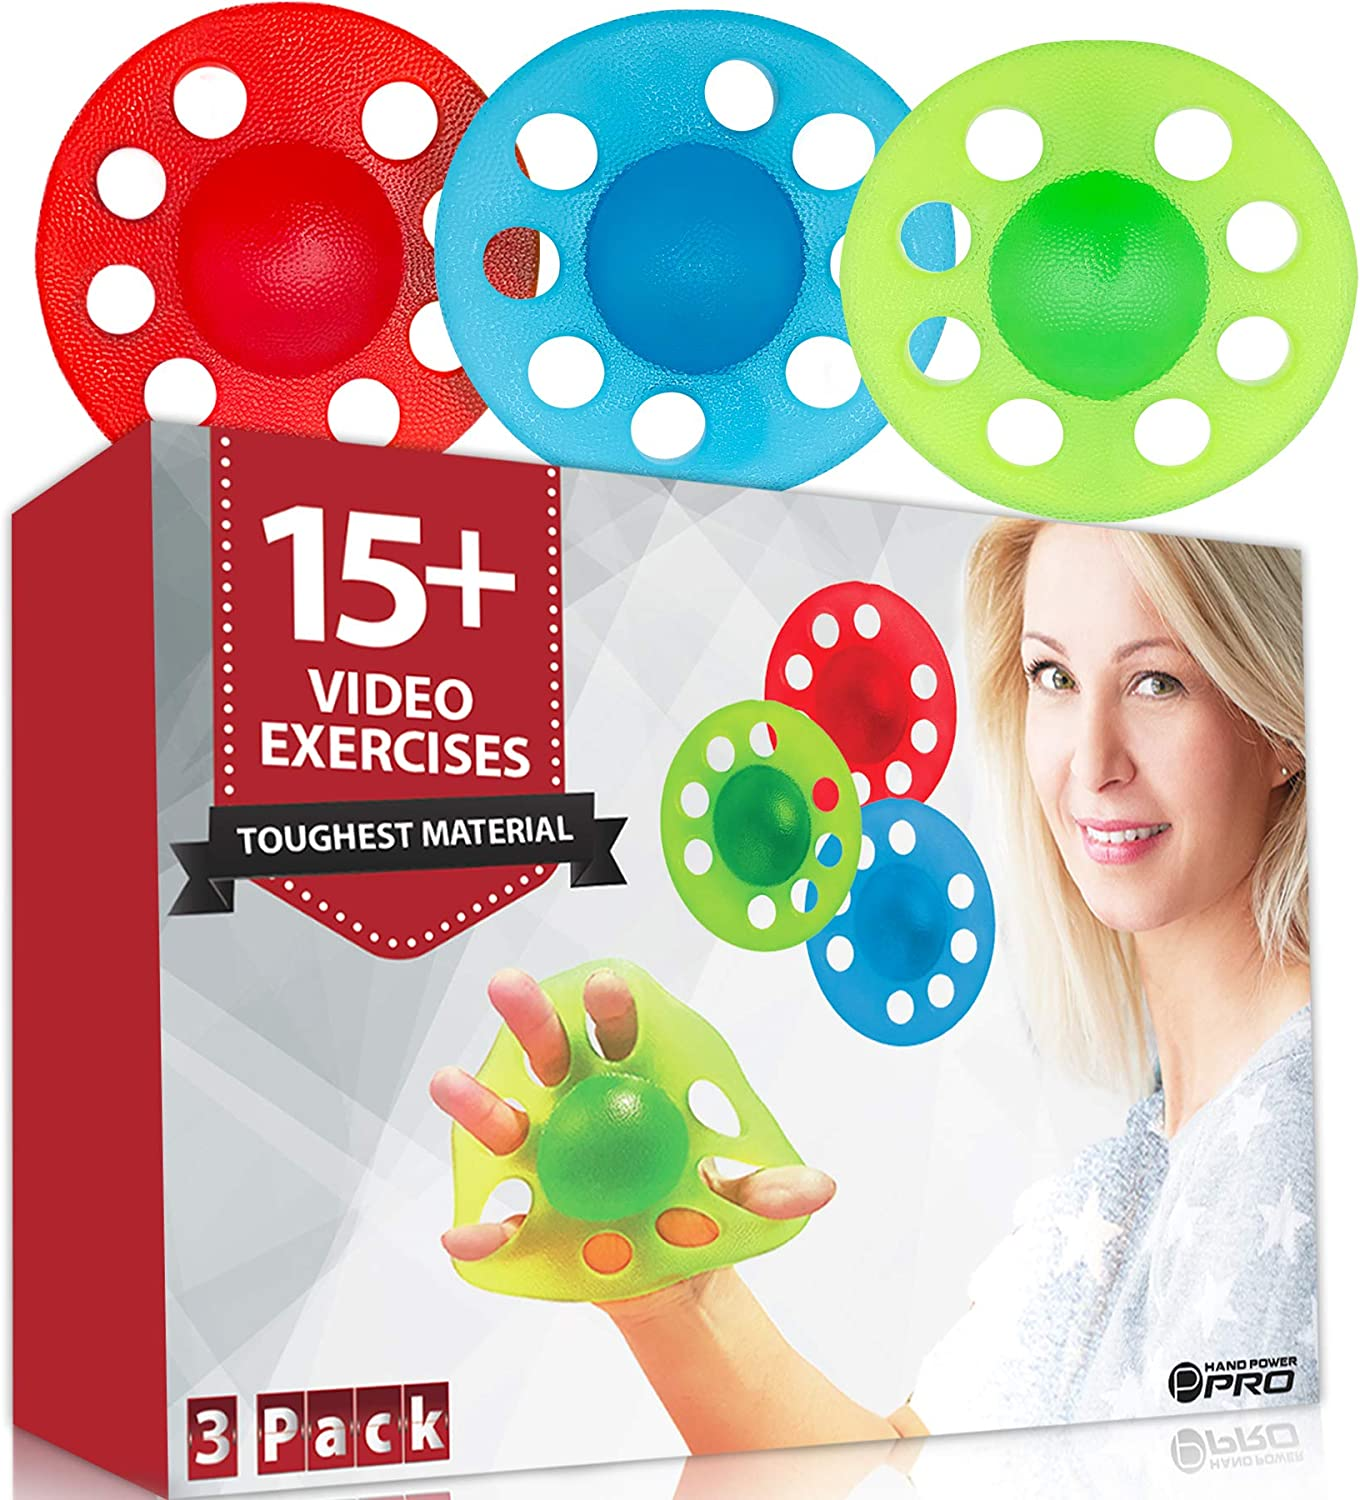 Pykal 3x Hand and Finger Strengtheners - 15+ VIDEO EXERCISES included with HAND POWER PRO | Finger Exerciser Hand Grip Strengthener For Seniors, Arthritis, Carpal Tunnel, Computer Users, Rock Climbers: Sports & Outdoors